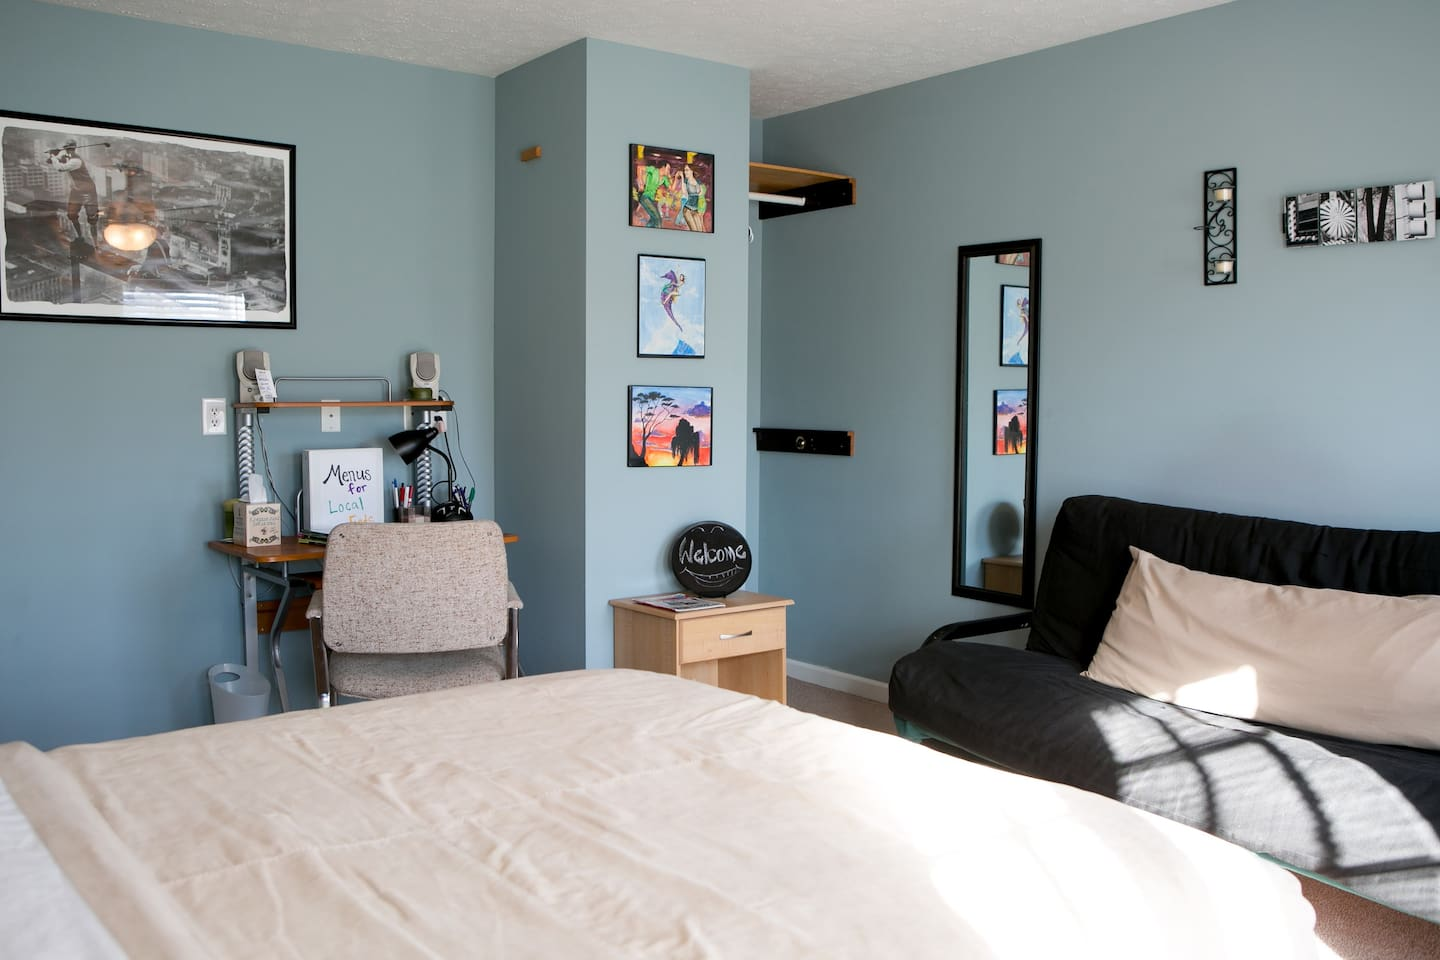 Master bedroom.  Queen size bed, futon, small space to hang clothes, and desk for working/studying.